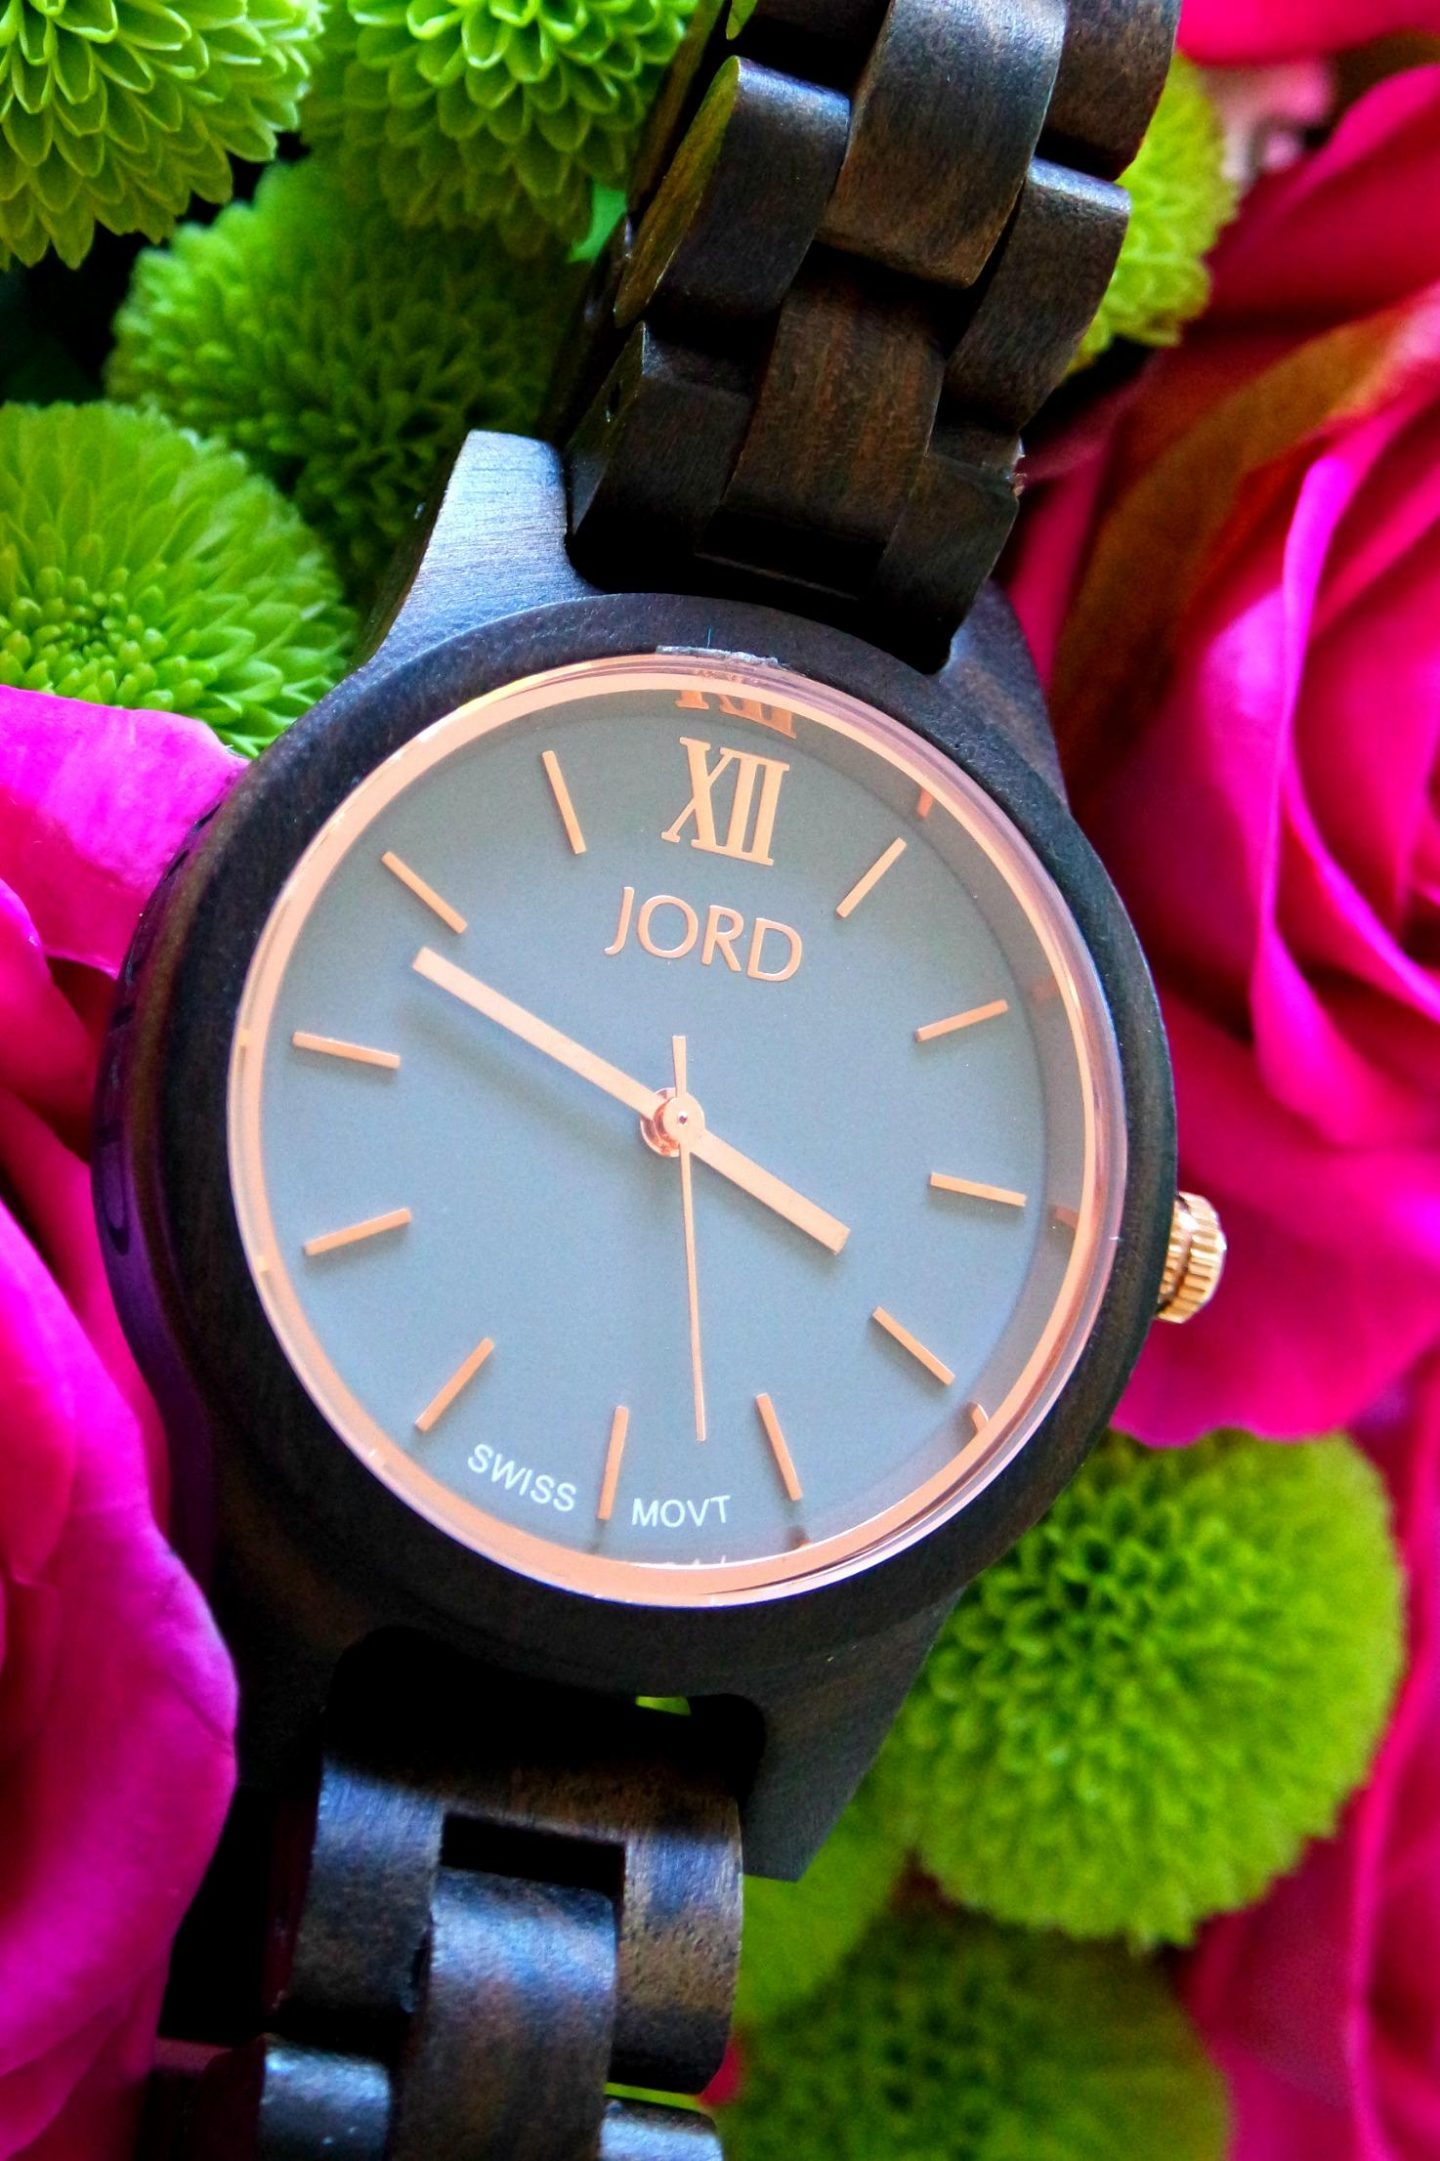 Close up photograph of a brown and purple watch made of wood resting on pink roses